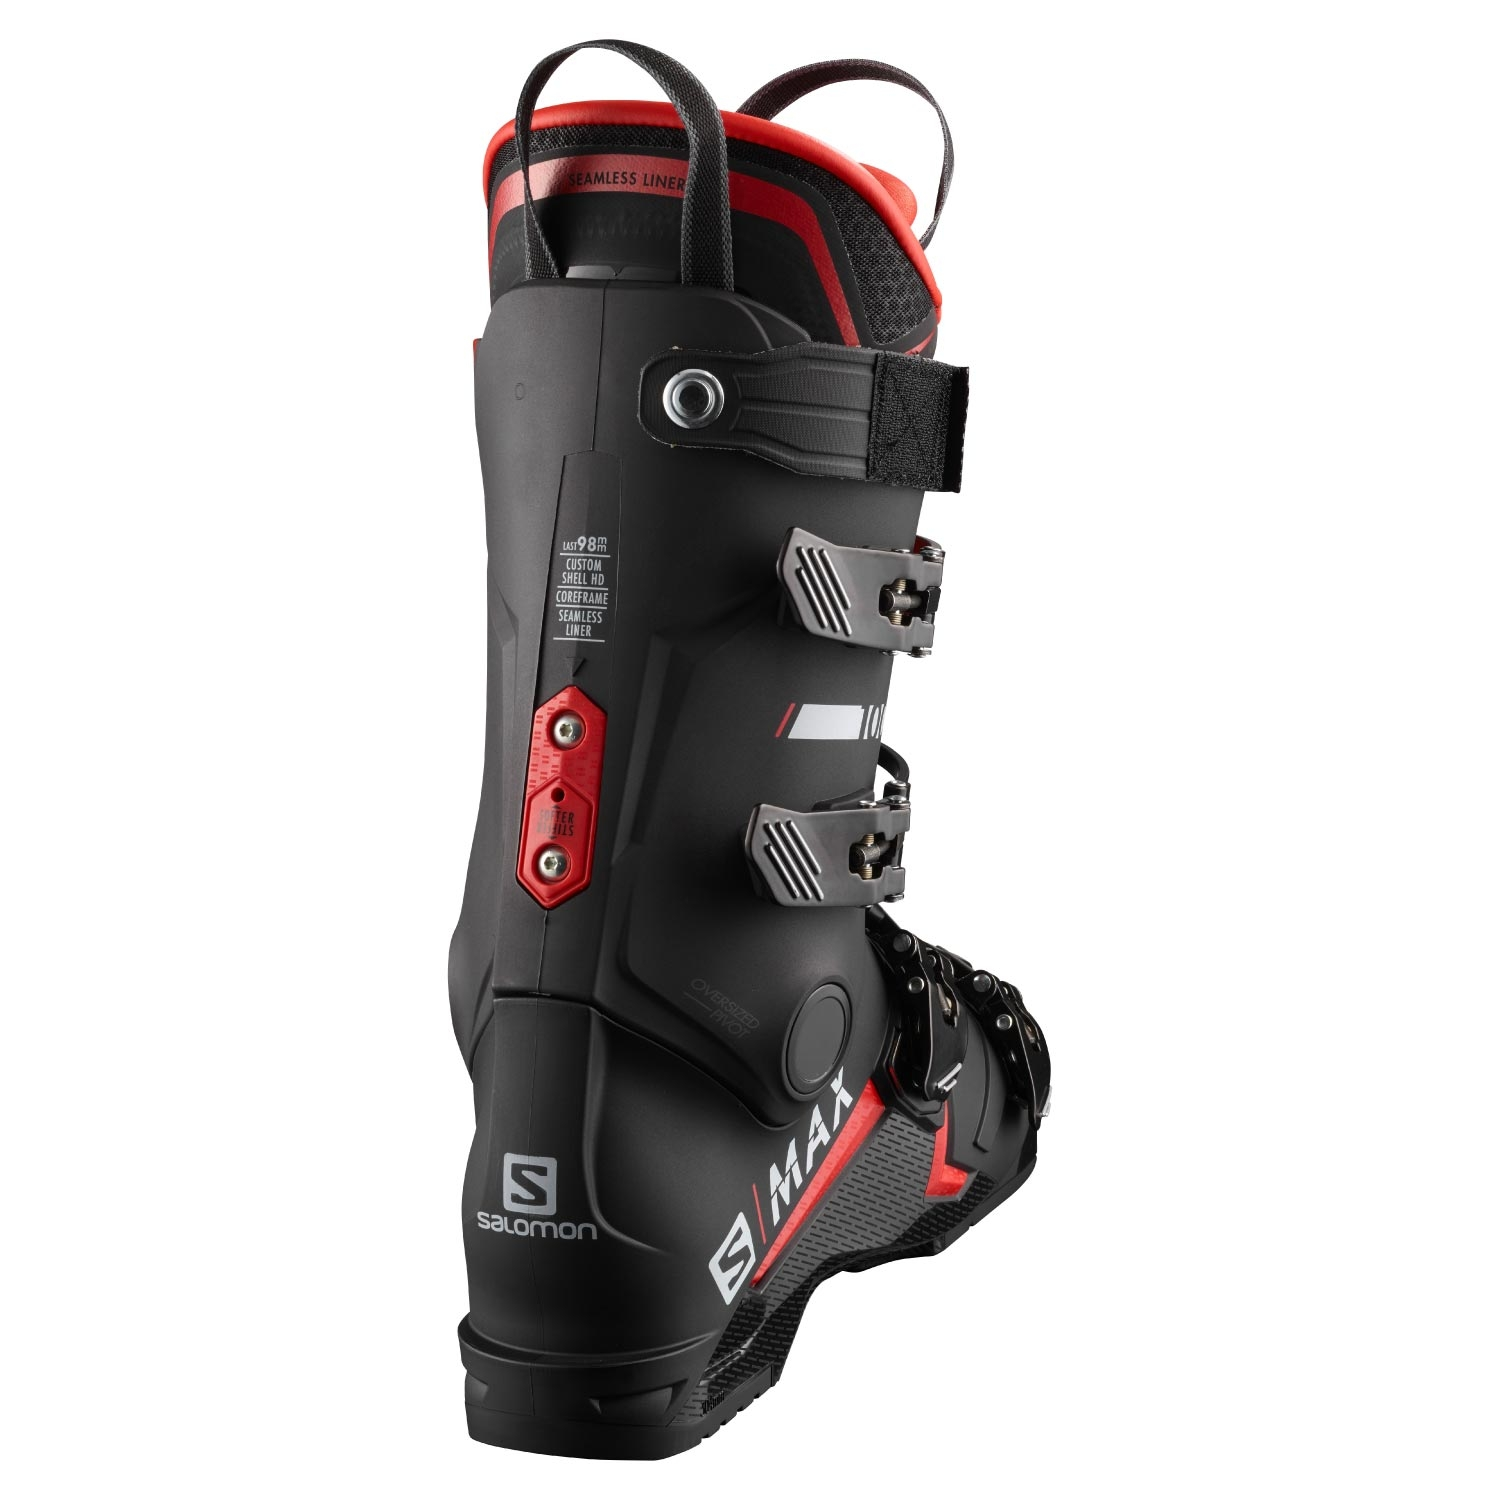 Salomon S Max 100 Ski Boots Black/Red 2021